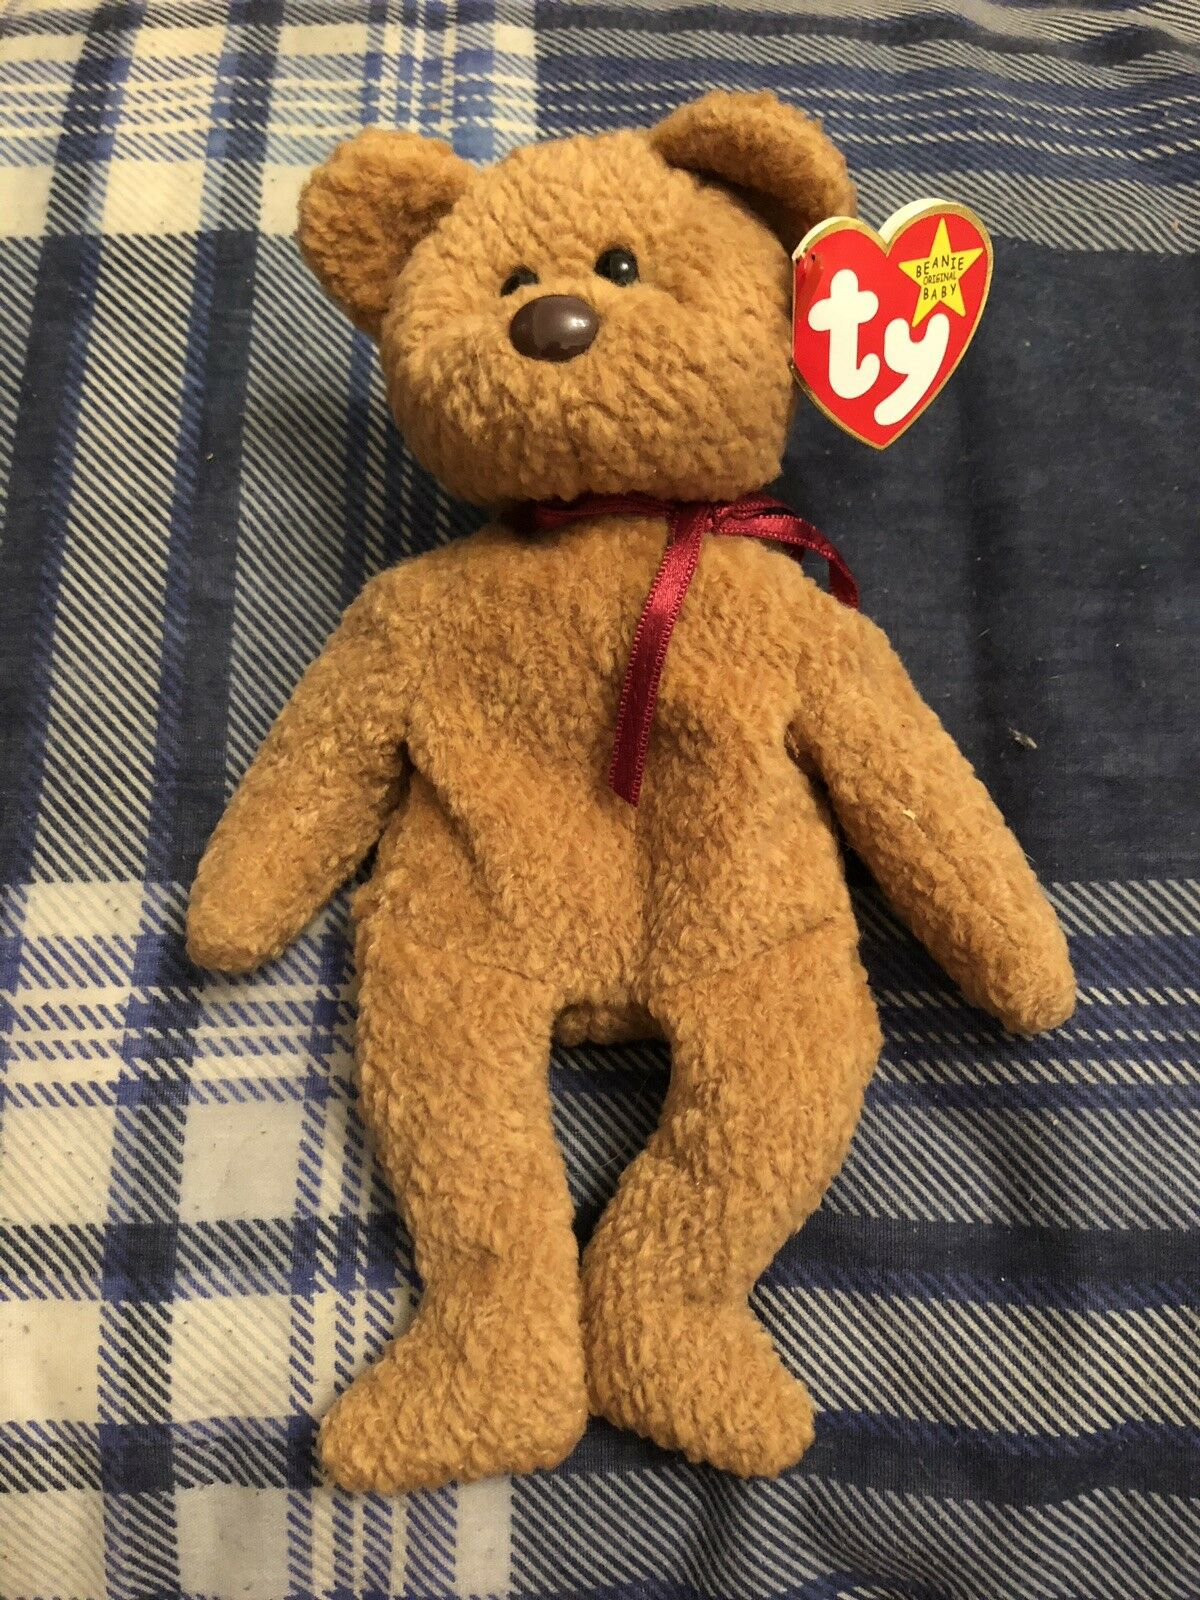 Curly TY Beanie baby With Errors